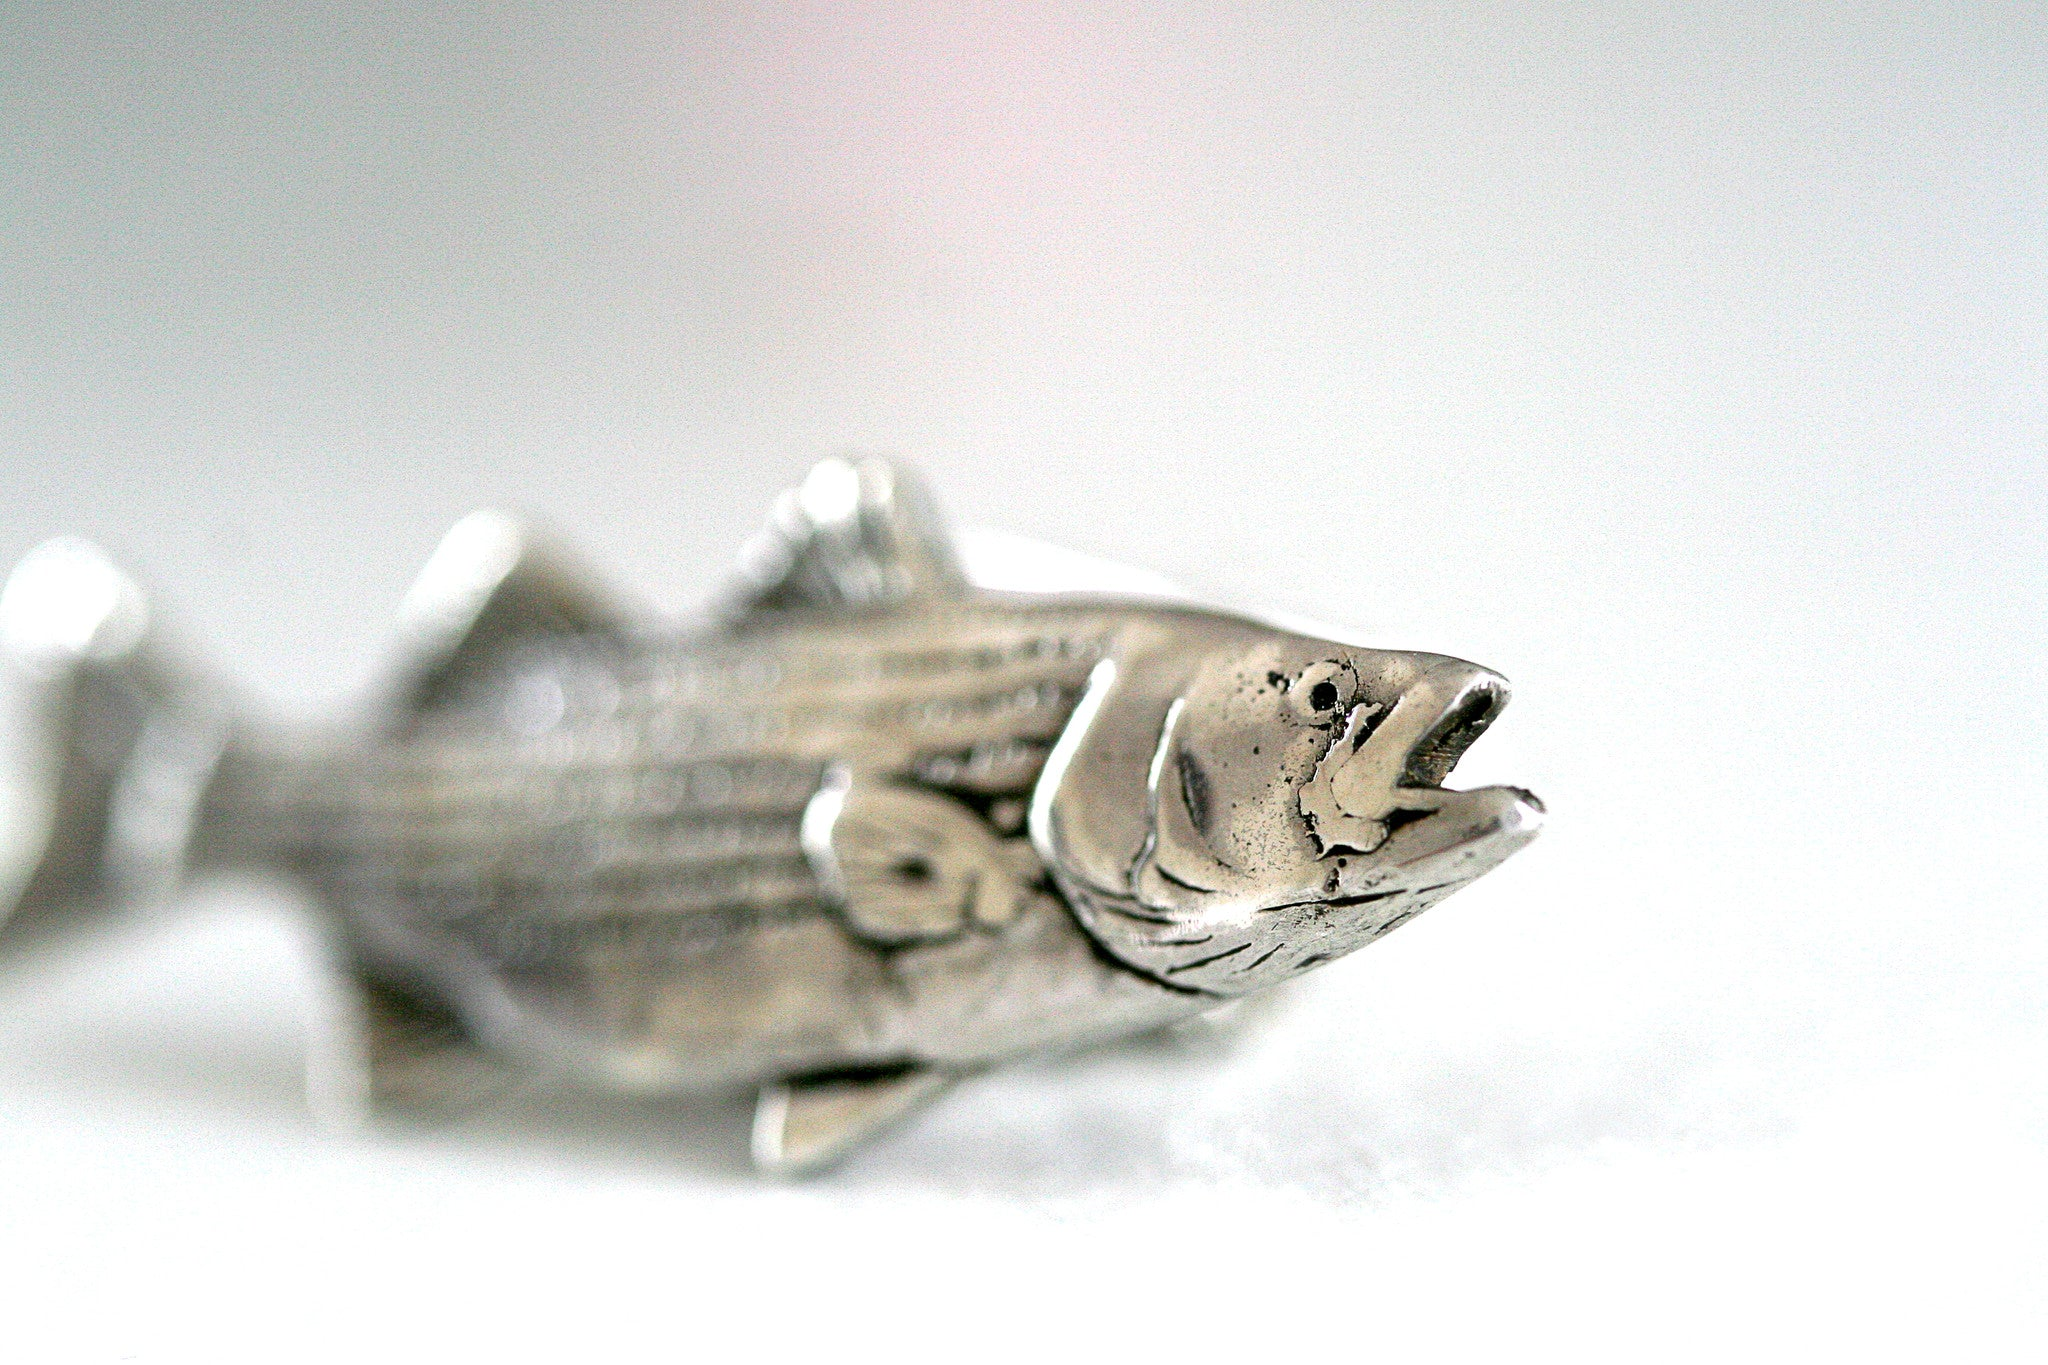 The Great Fish, Tie/Lapel Pin